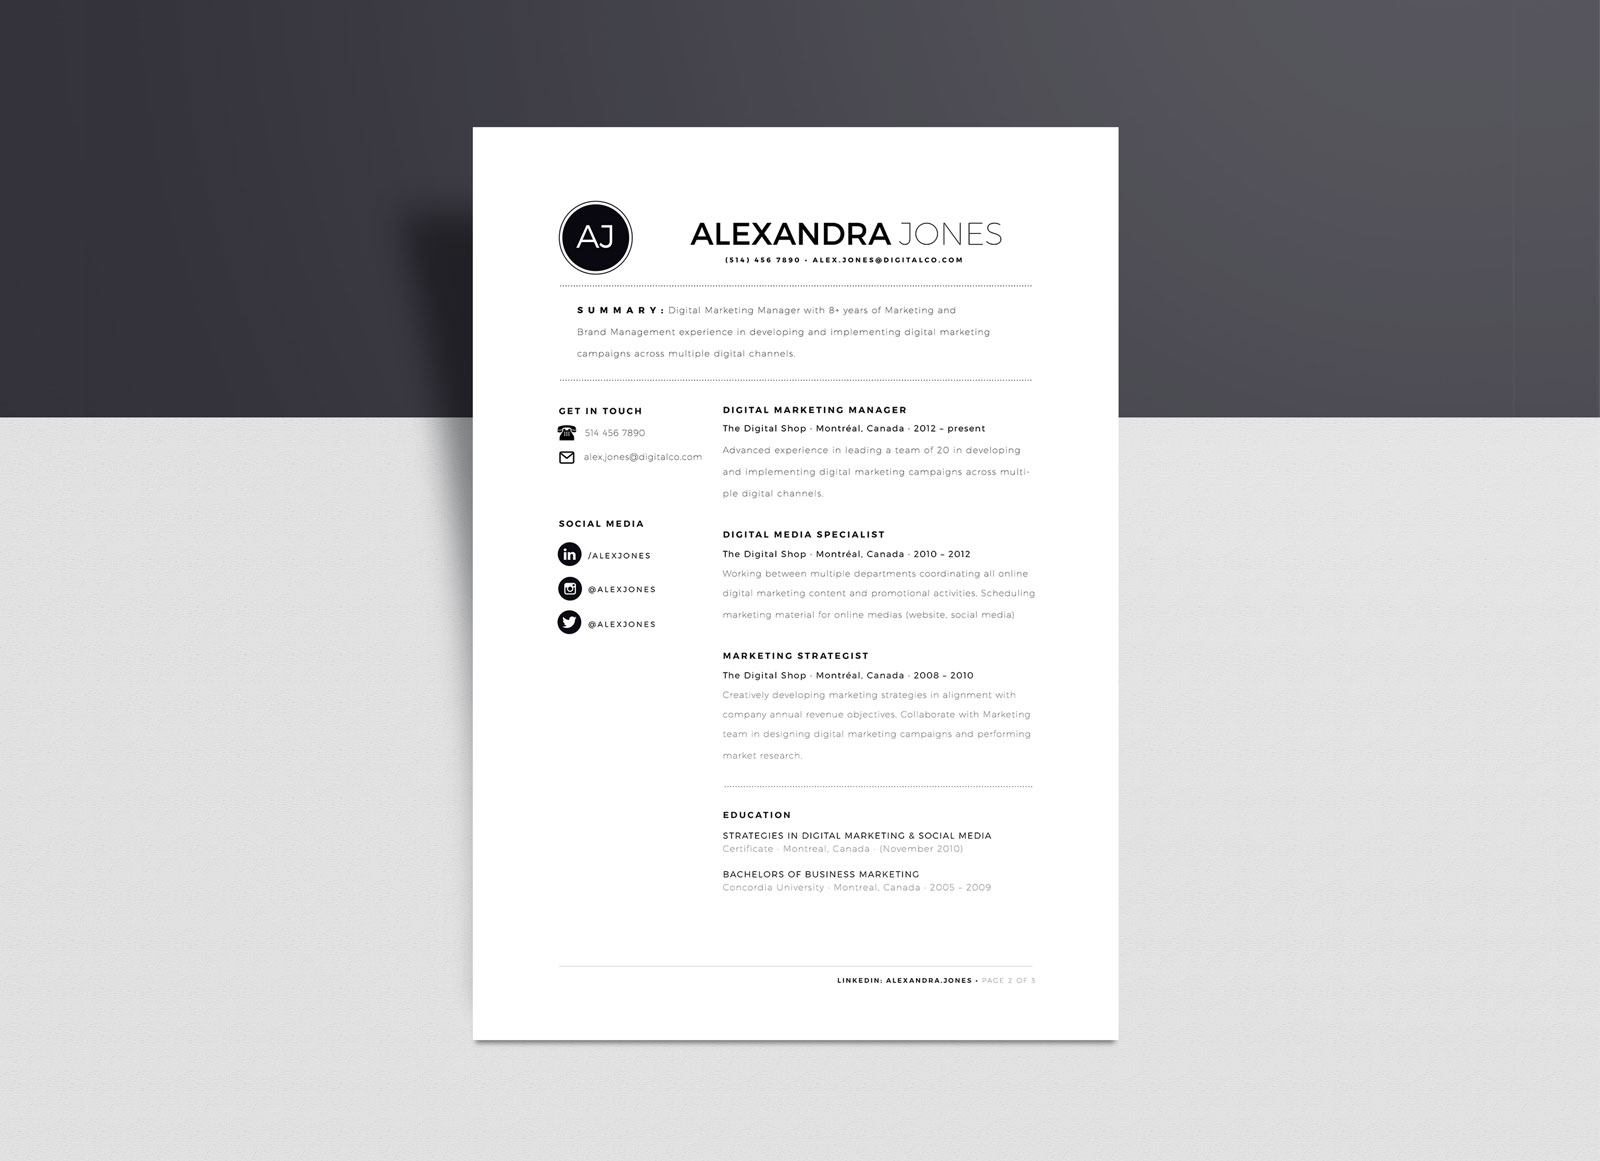 free minimalist resume template in word format good design minimalistic objective portion Resume Resume Minimalist Design